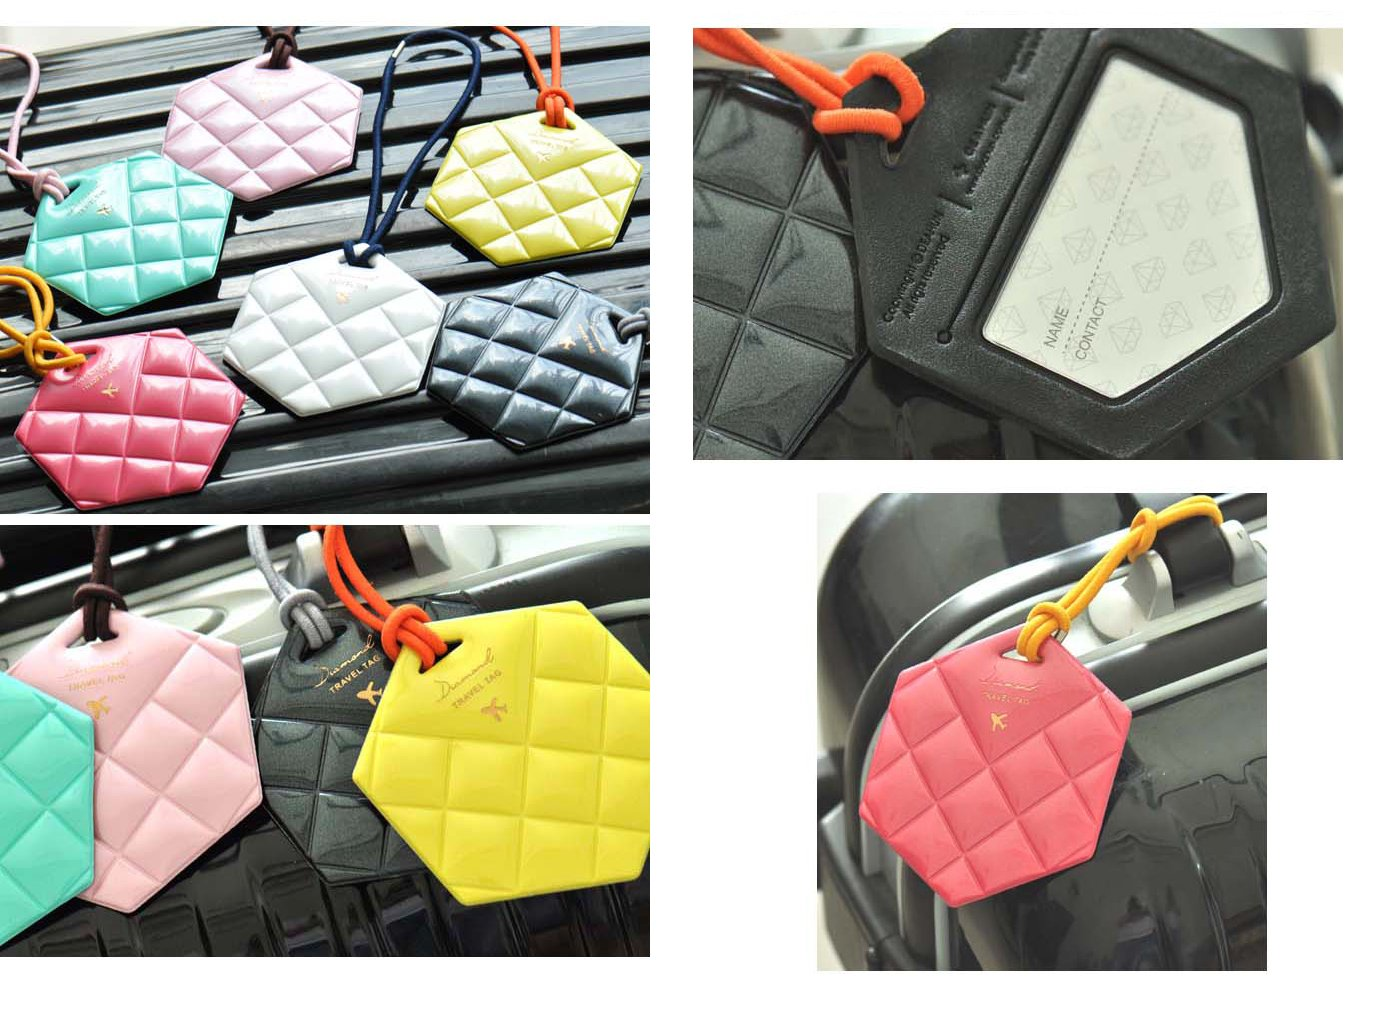 Luggage Tag Quilted Diamond PVC Design l Bagpack Travel Tags Id Name Tag 6 Pack (4 Pc Set)